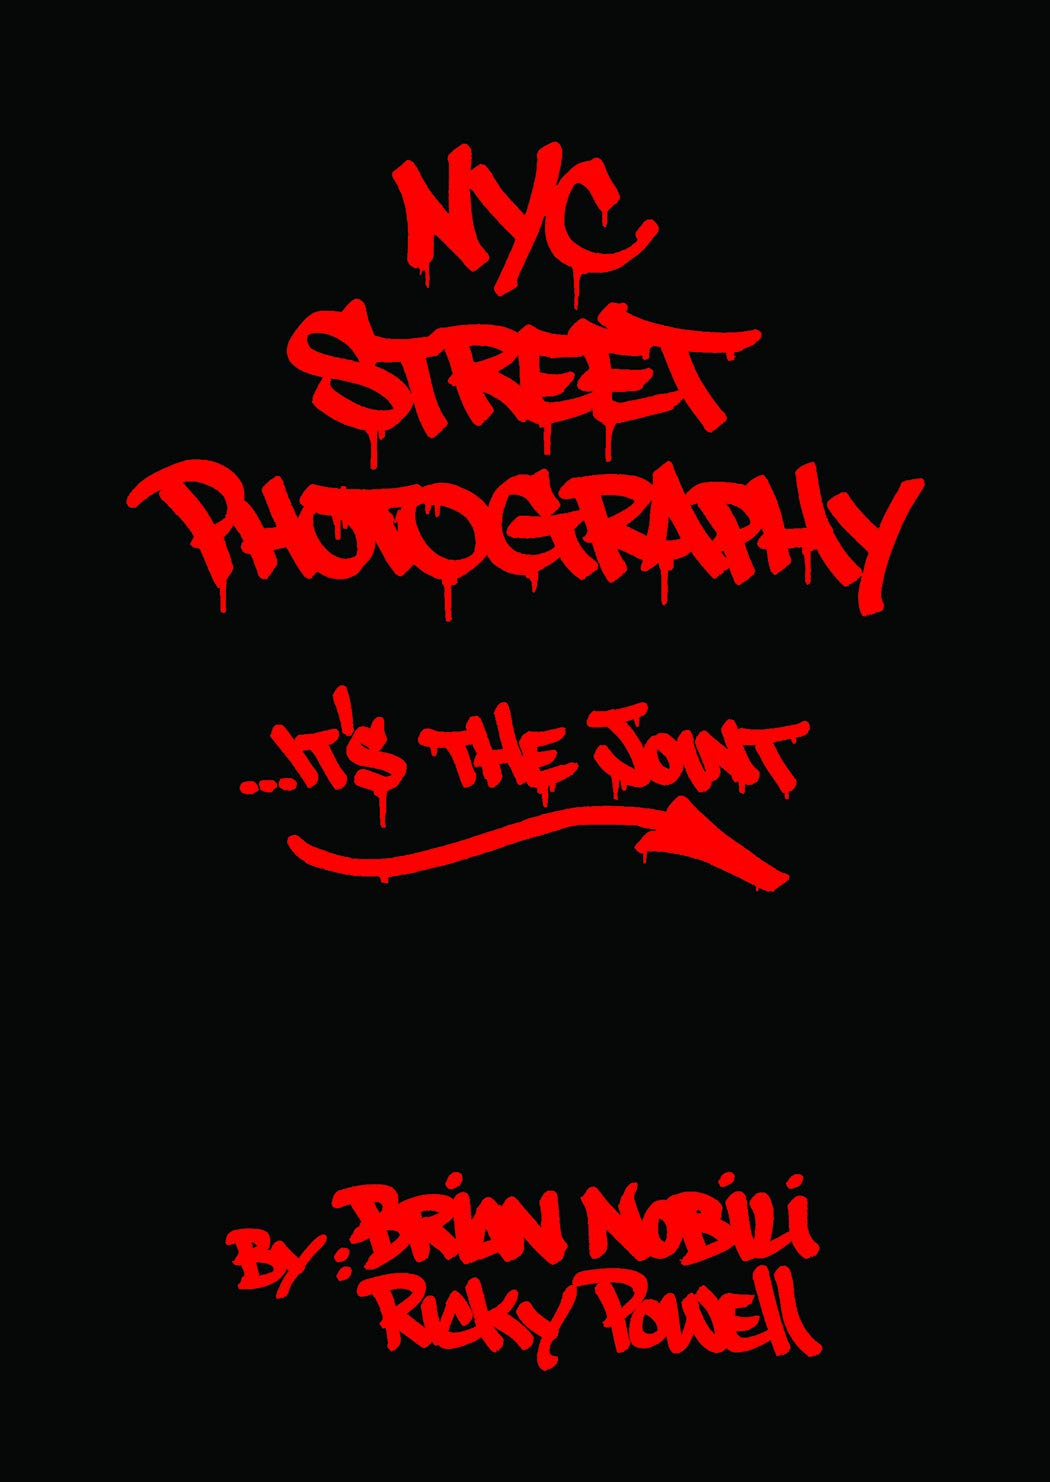 front cover of the book NYC Street Photography